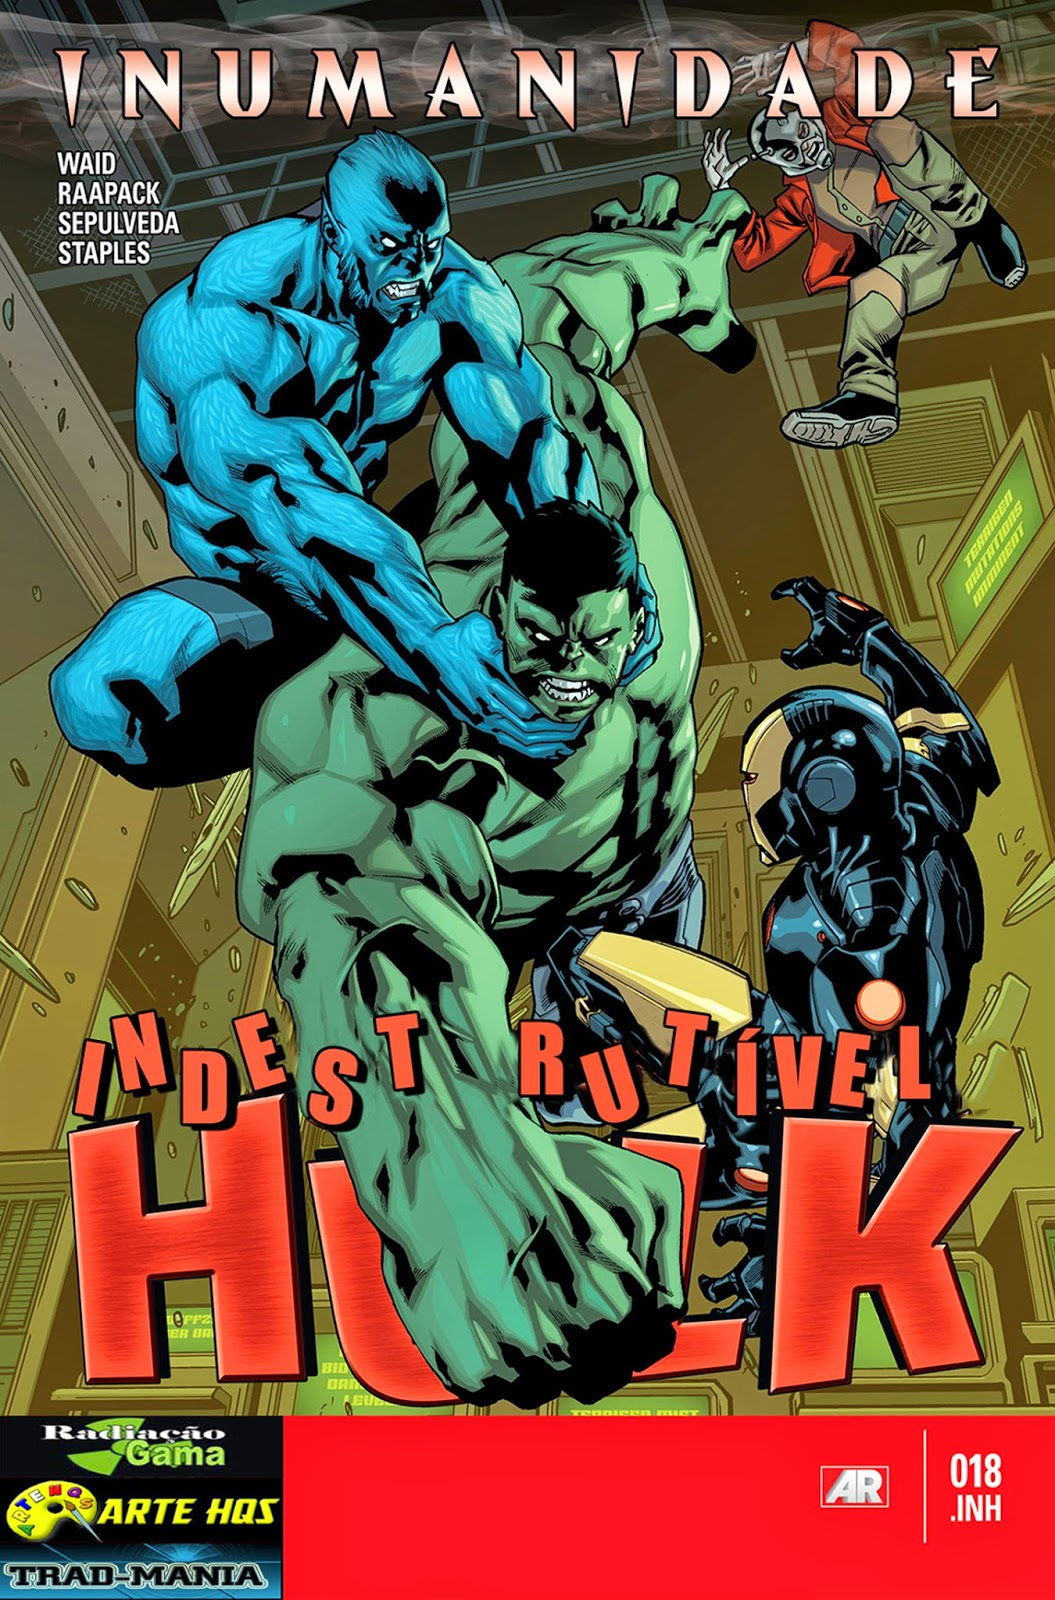 Nova Marvel! O Indestrutível Hulk #18